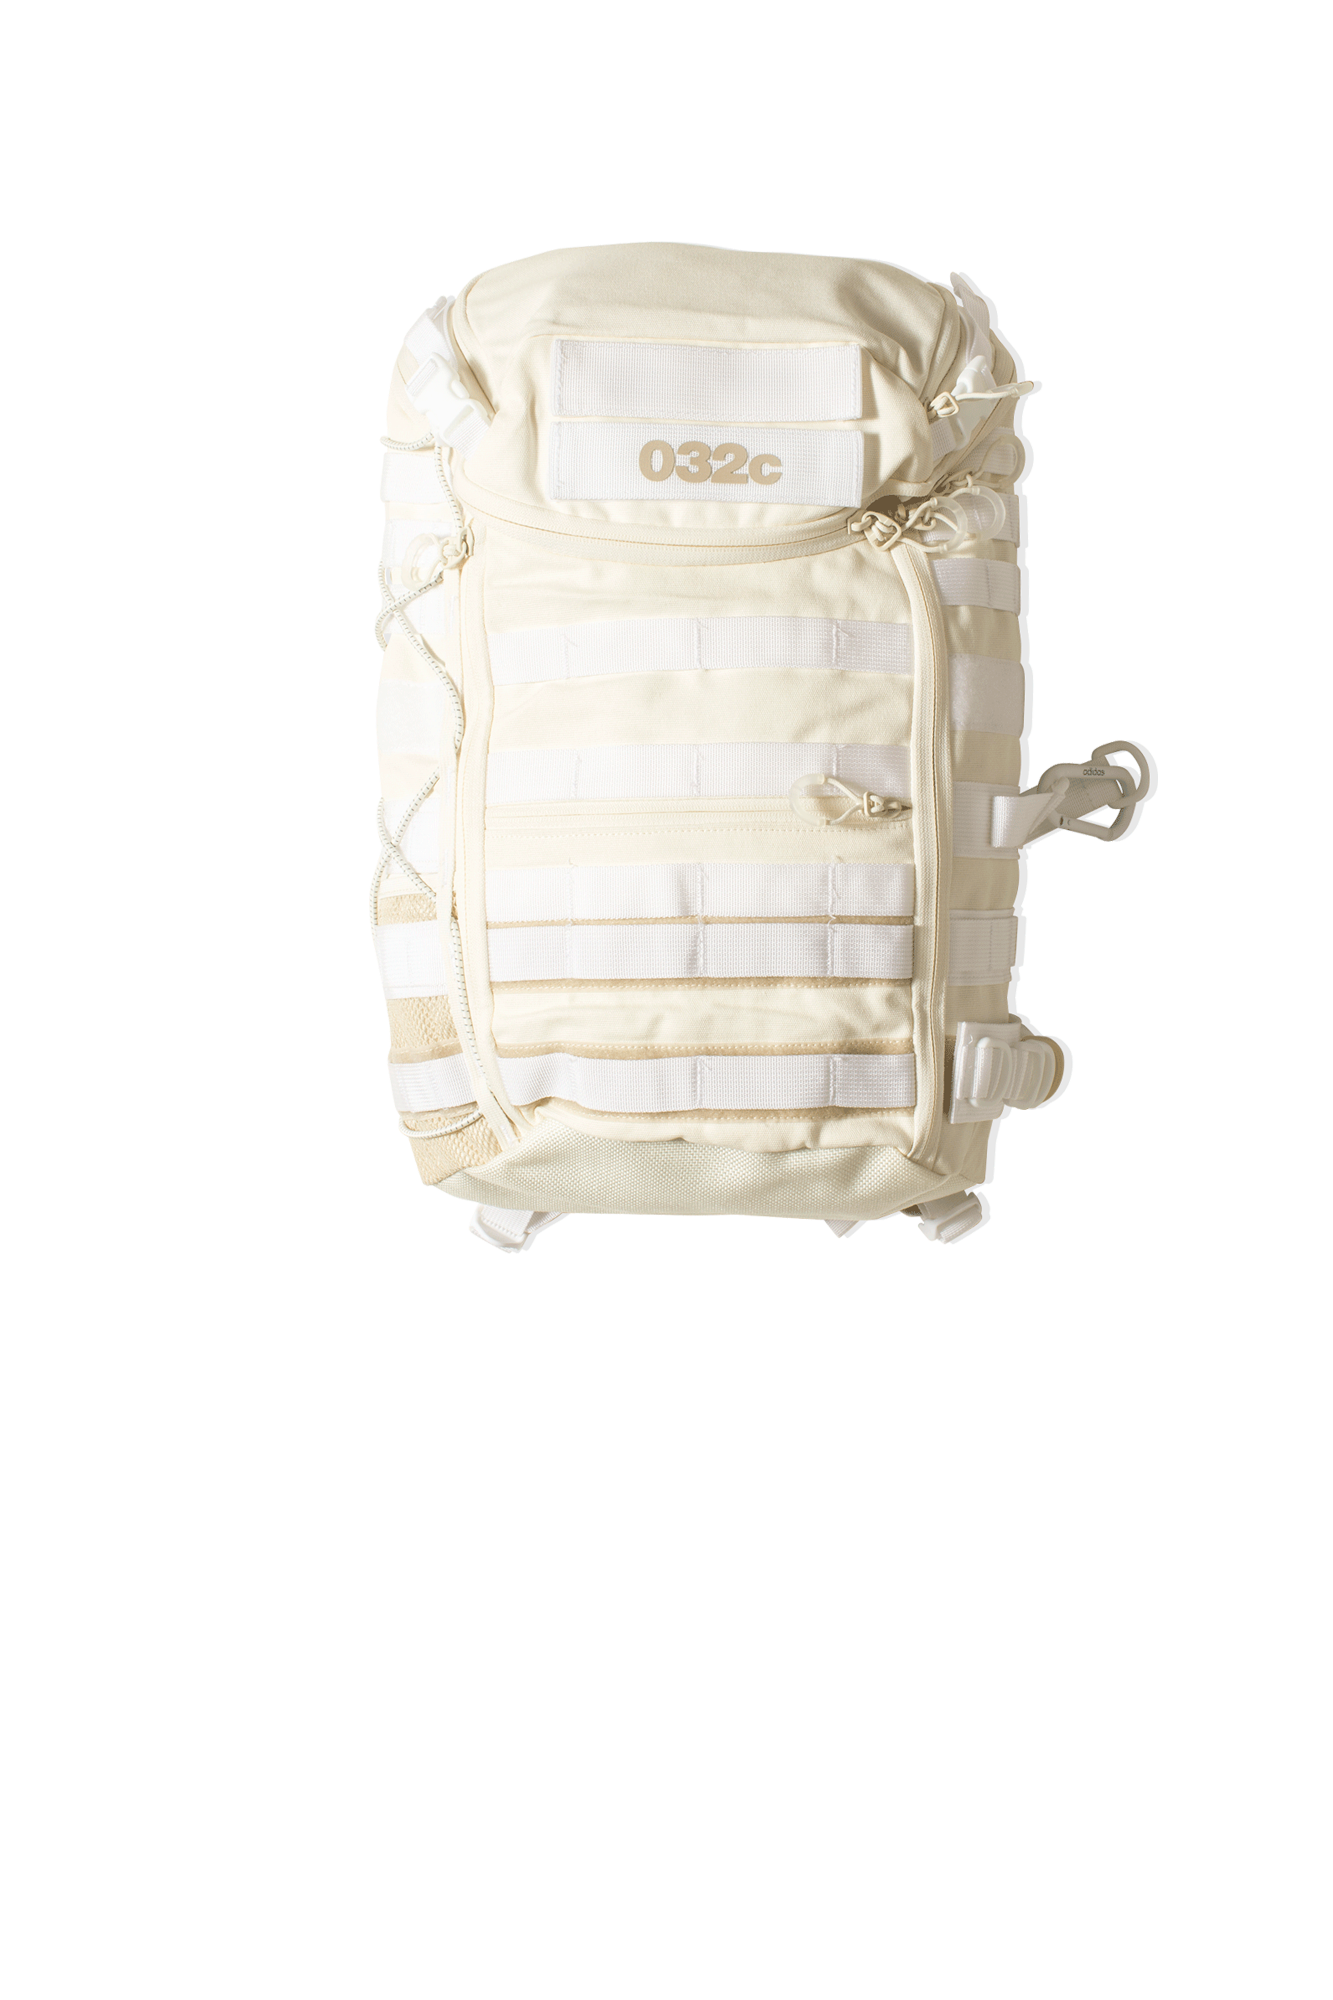 Adidas Originals Zaini 032C Backpack Bianco GN1675#000#WHITE#OS - One Block Down